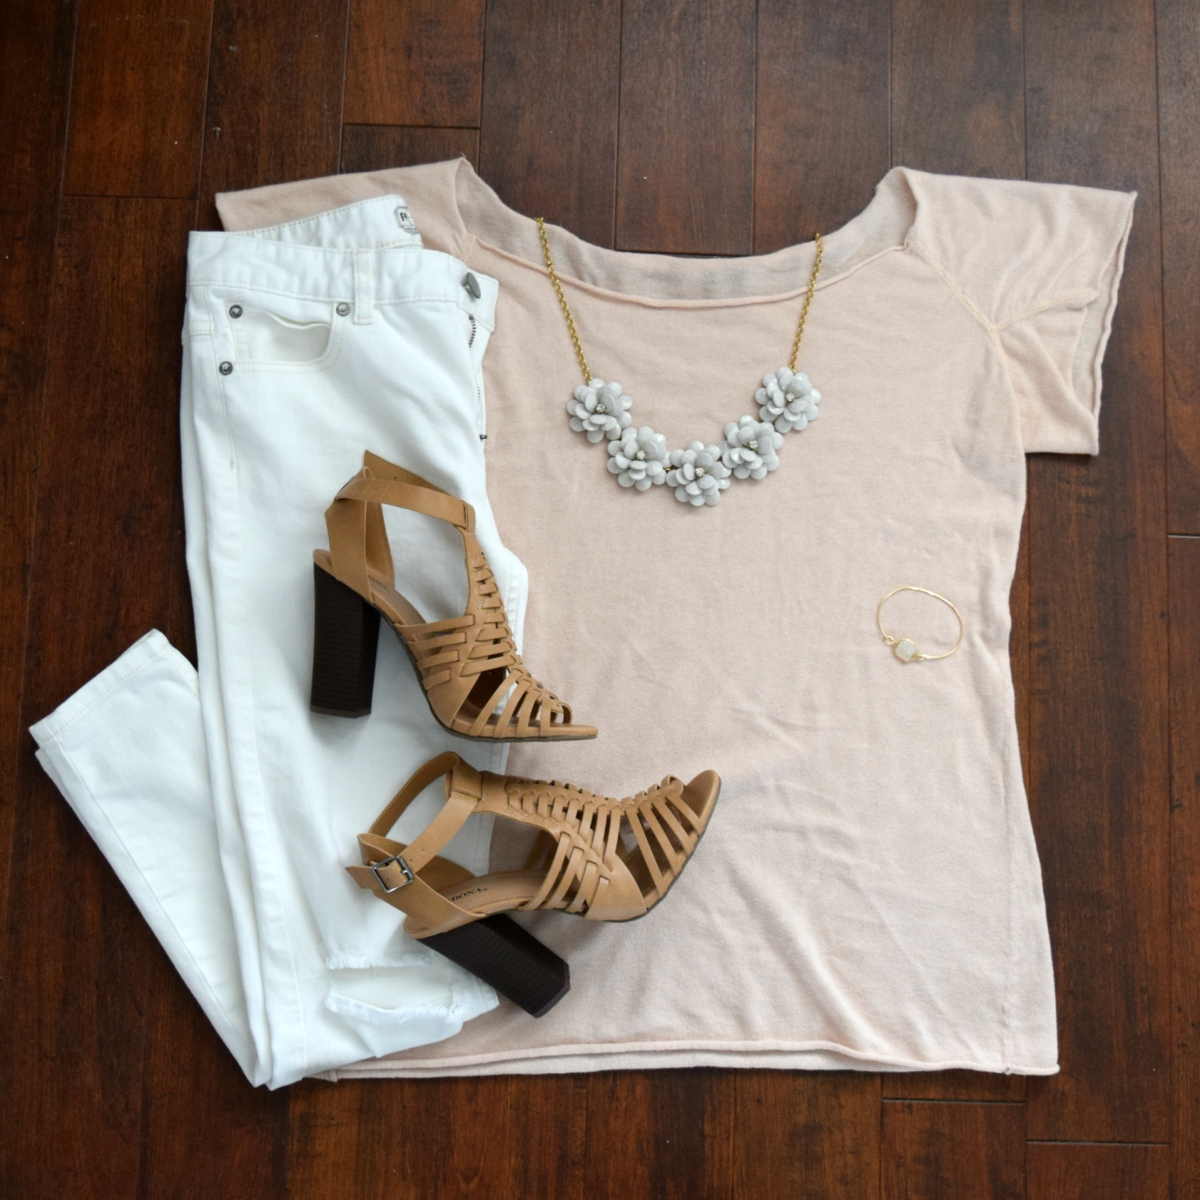 white and blush, off the shoulder and flowers, two perfect combinations  www.pearlsandsportsbras.com 